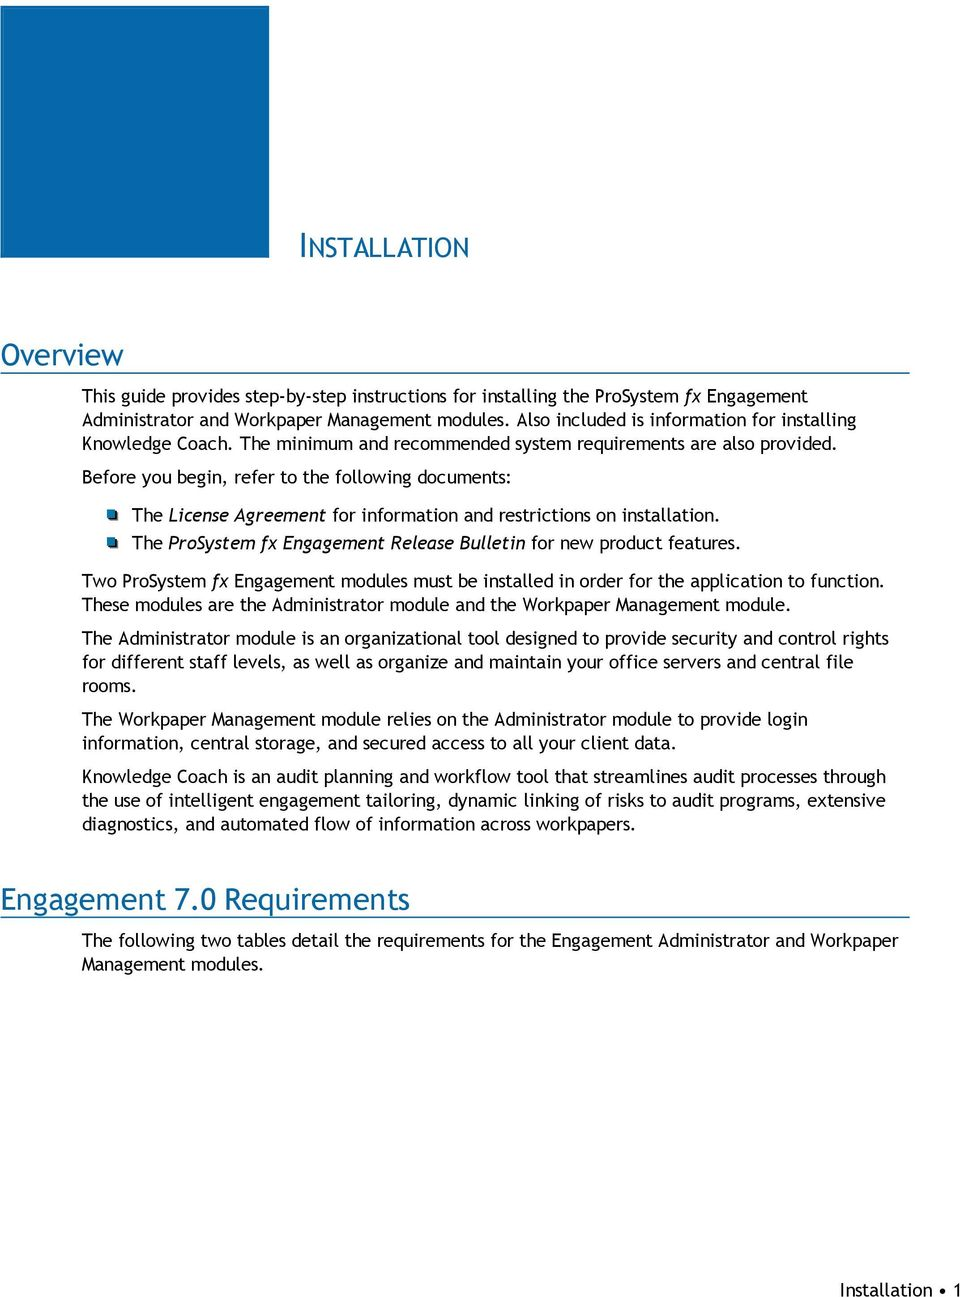 Before you begin, refer to the following documents: The License Agreement for information and restrictions on installation. The ProSystem fx Engagement Release Bulletin for new product features.